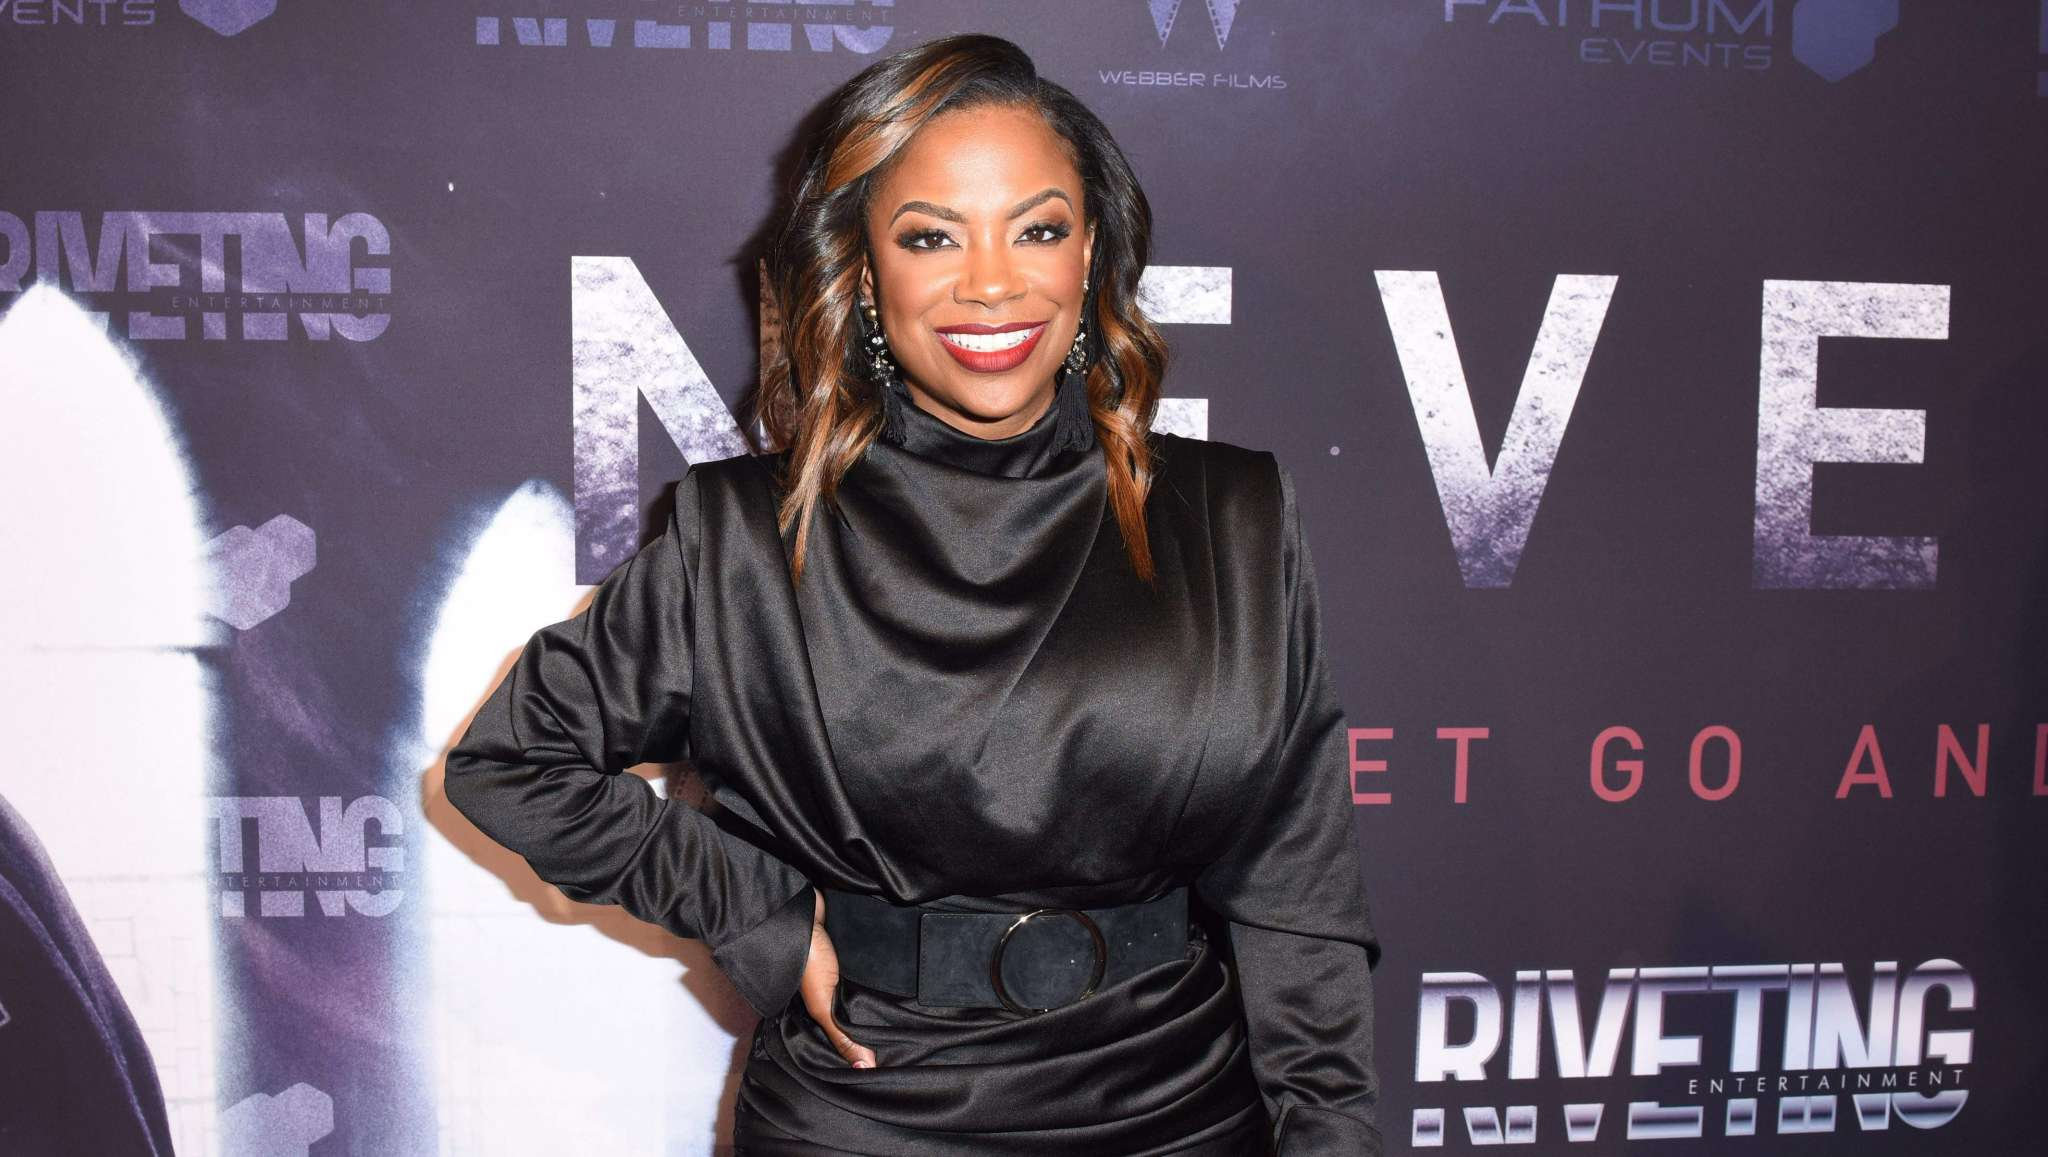 Kandi Burruss Shares Photos From Her Latest Interview And Fans Ask Her Is She Plans On Clapping Back At Kim Zolciak After She Slammed Her Marriage To Todd Tucker